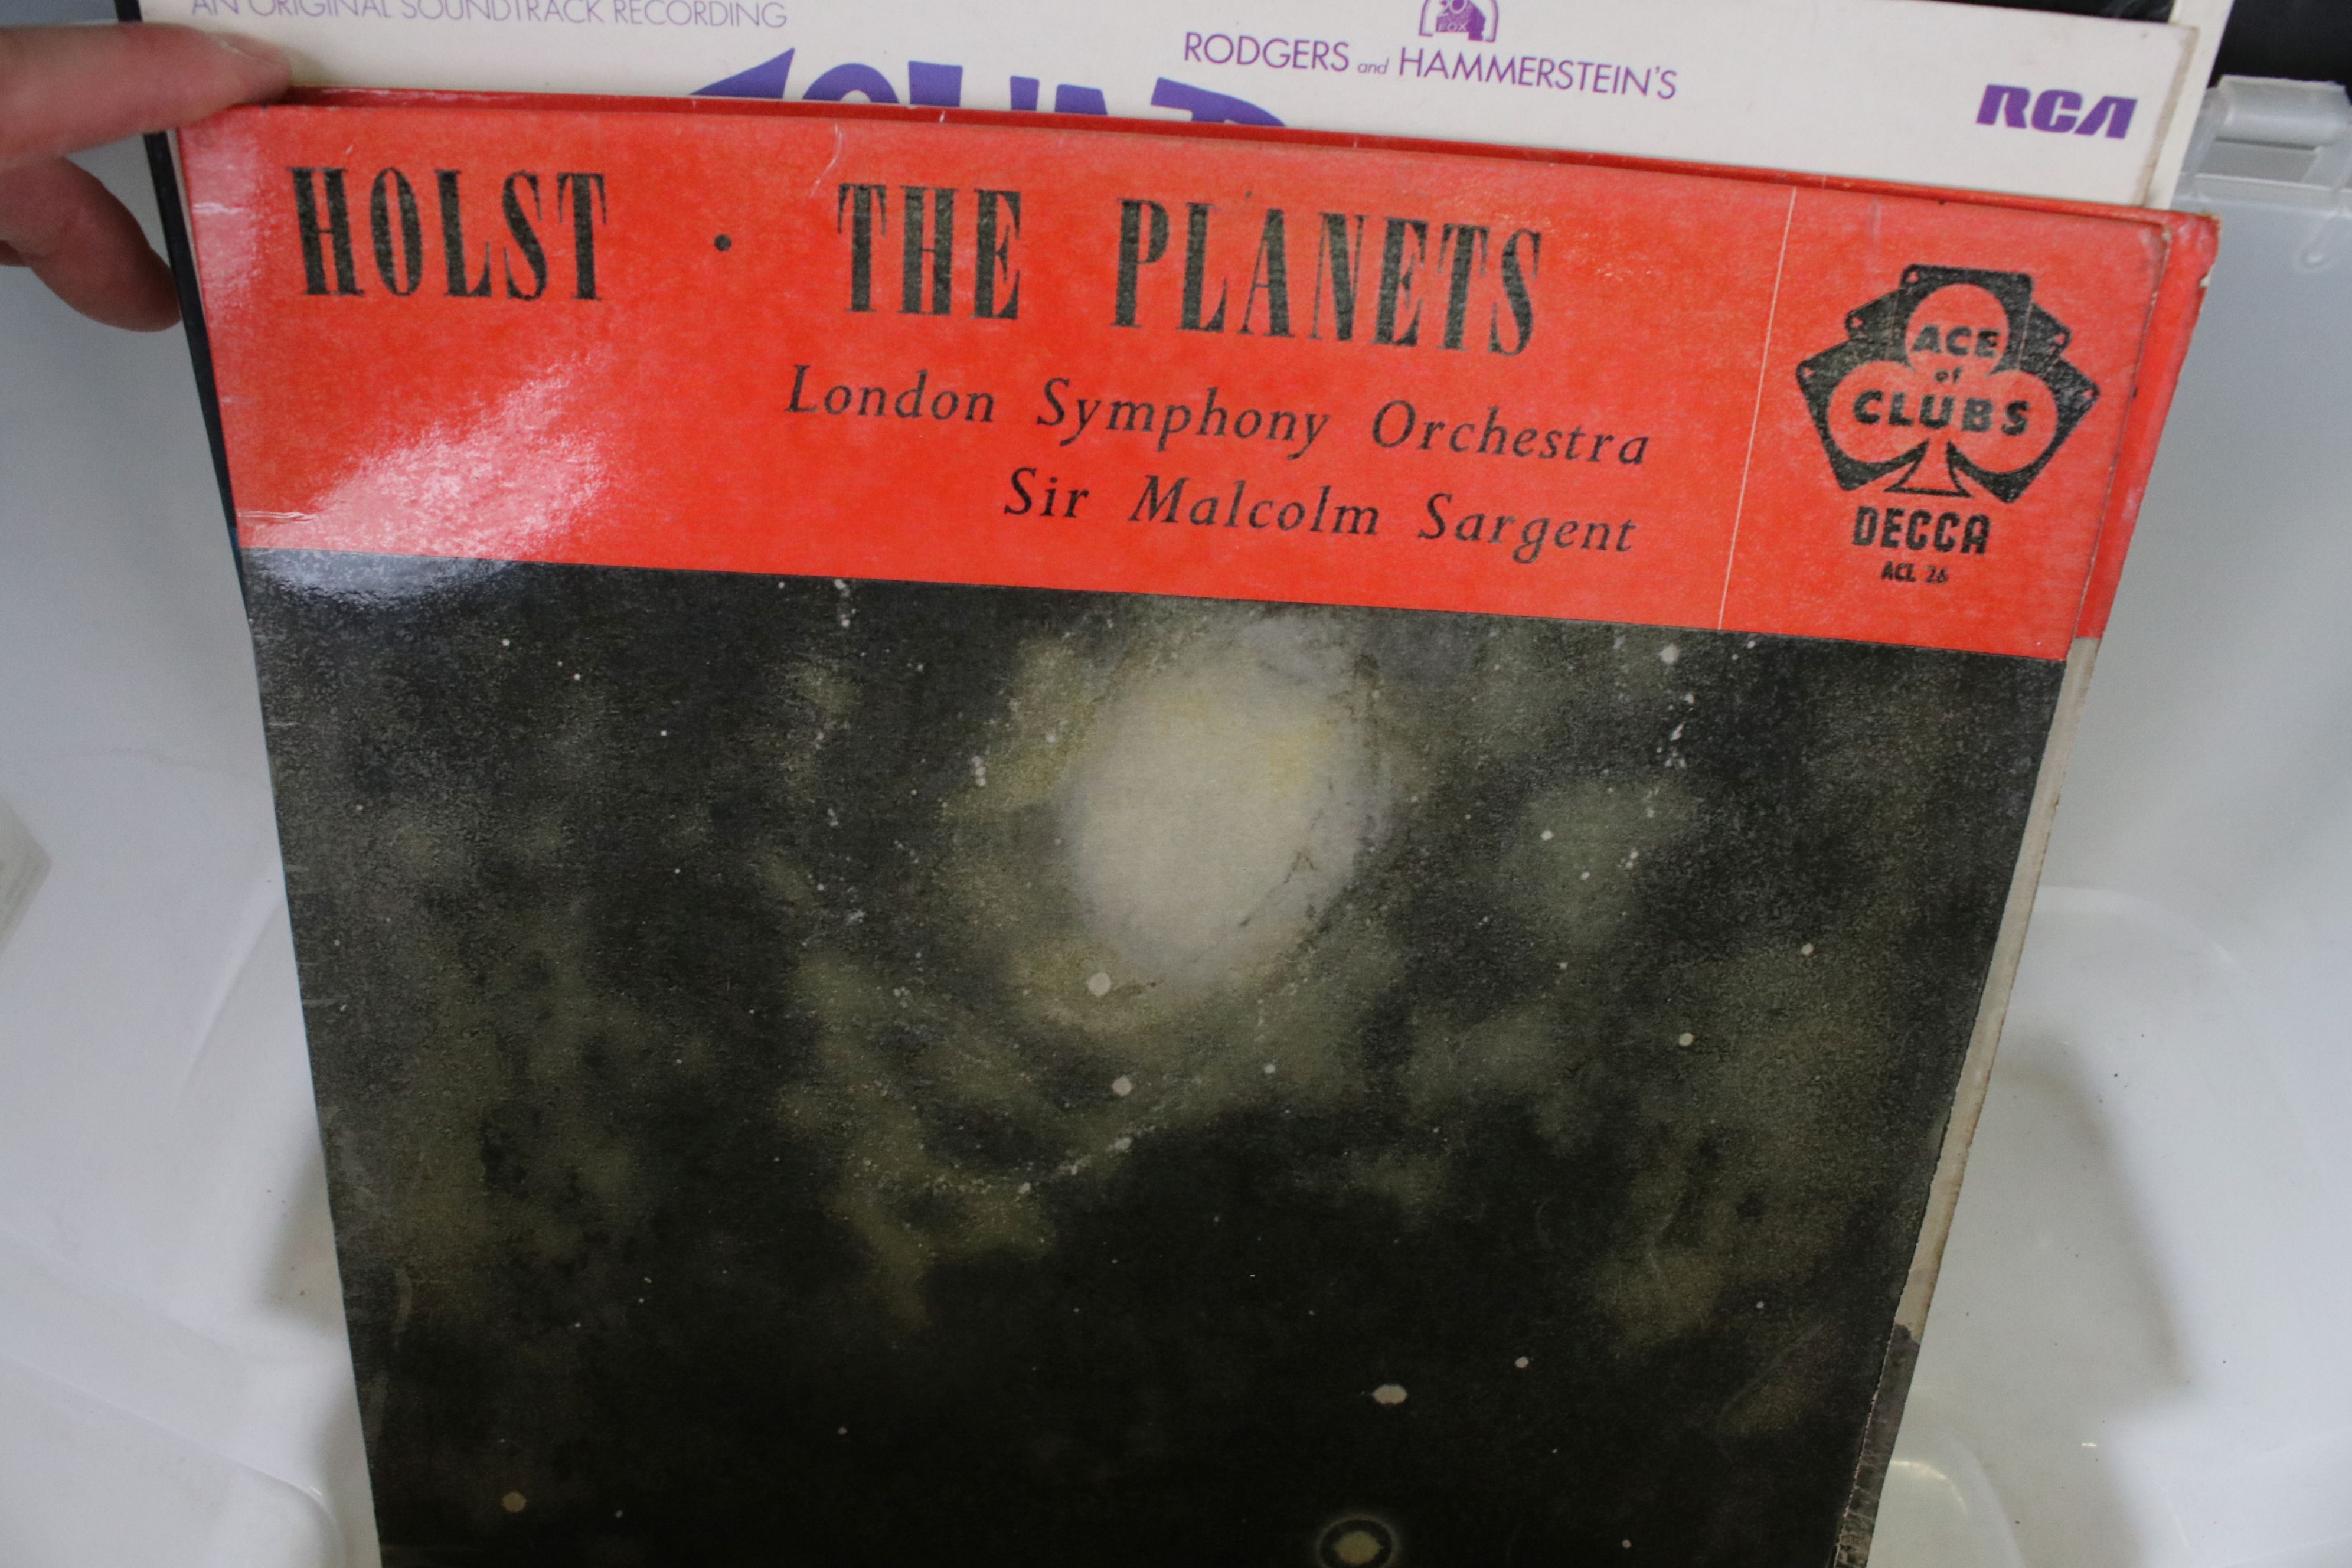 Vinyl - Rock / Pop / Classical - collection of approx 30 LP's to include The Rolling Stones (Spanish - Image 9 of 9